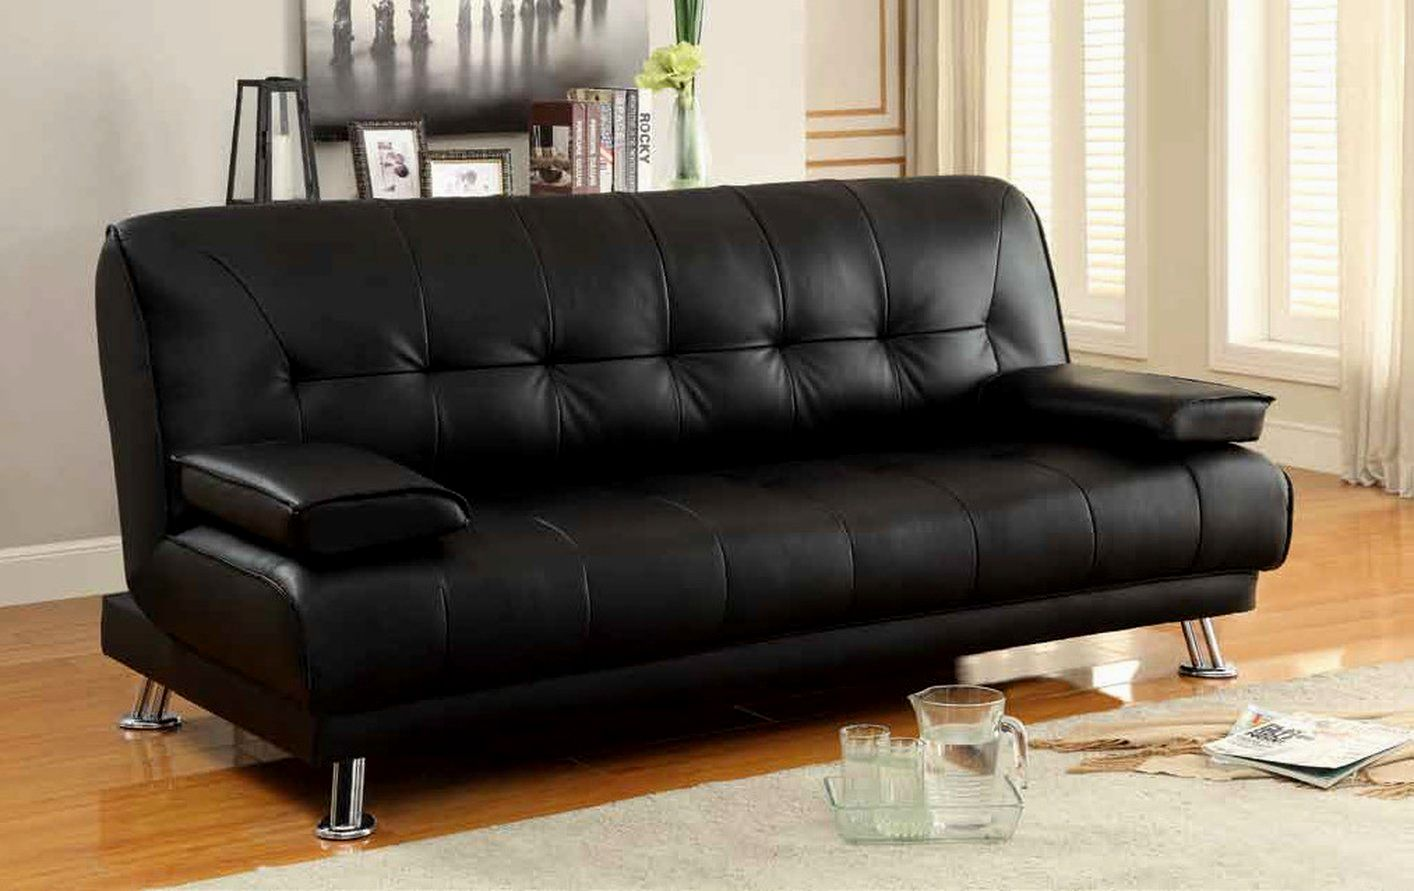 finest craigslist leather sofa image-Best Craigslist Leather sofa Collection